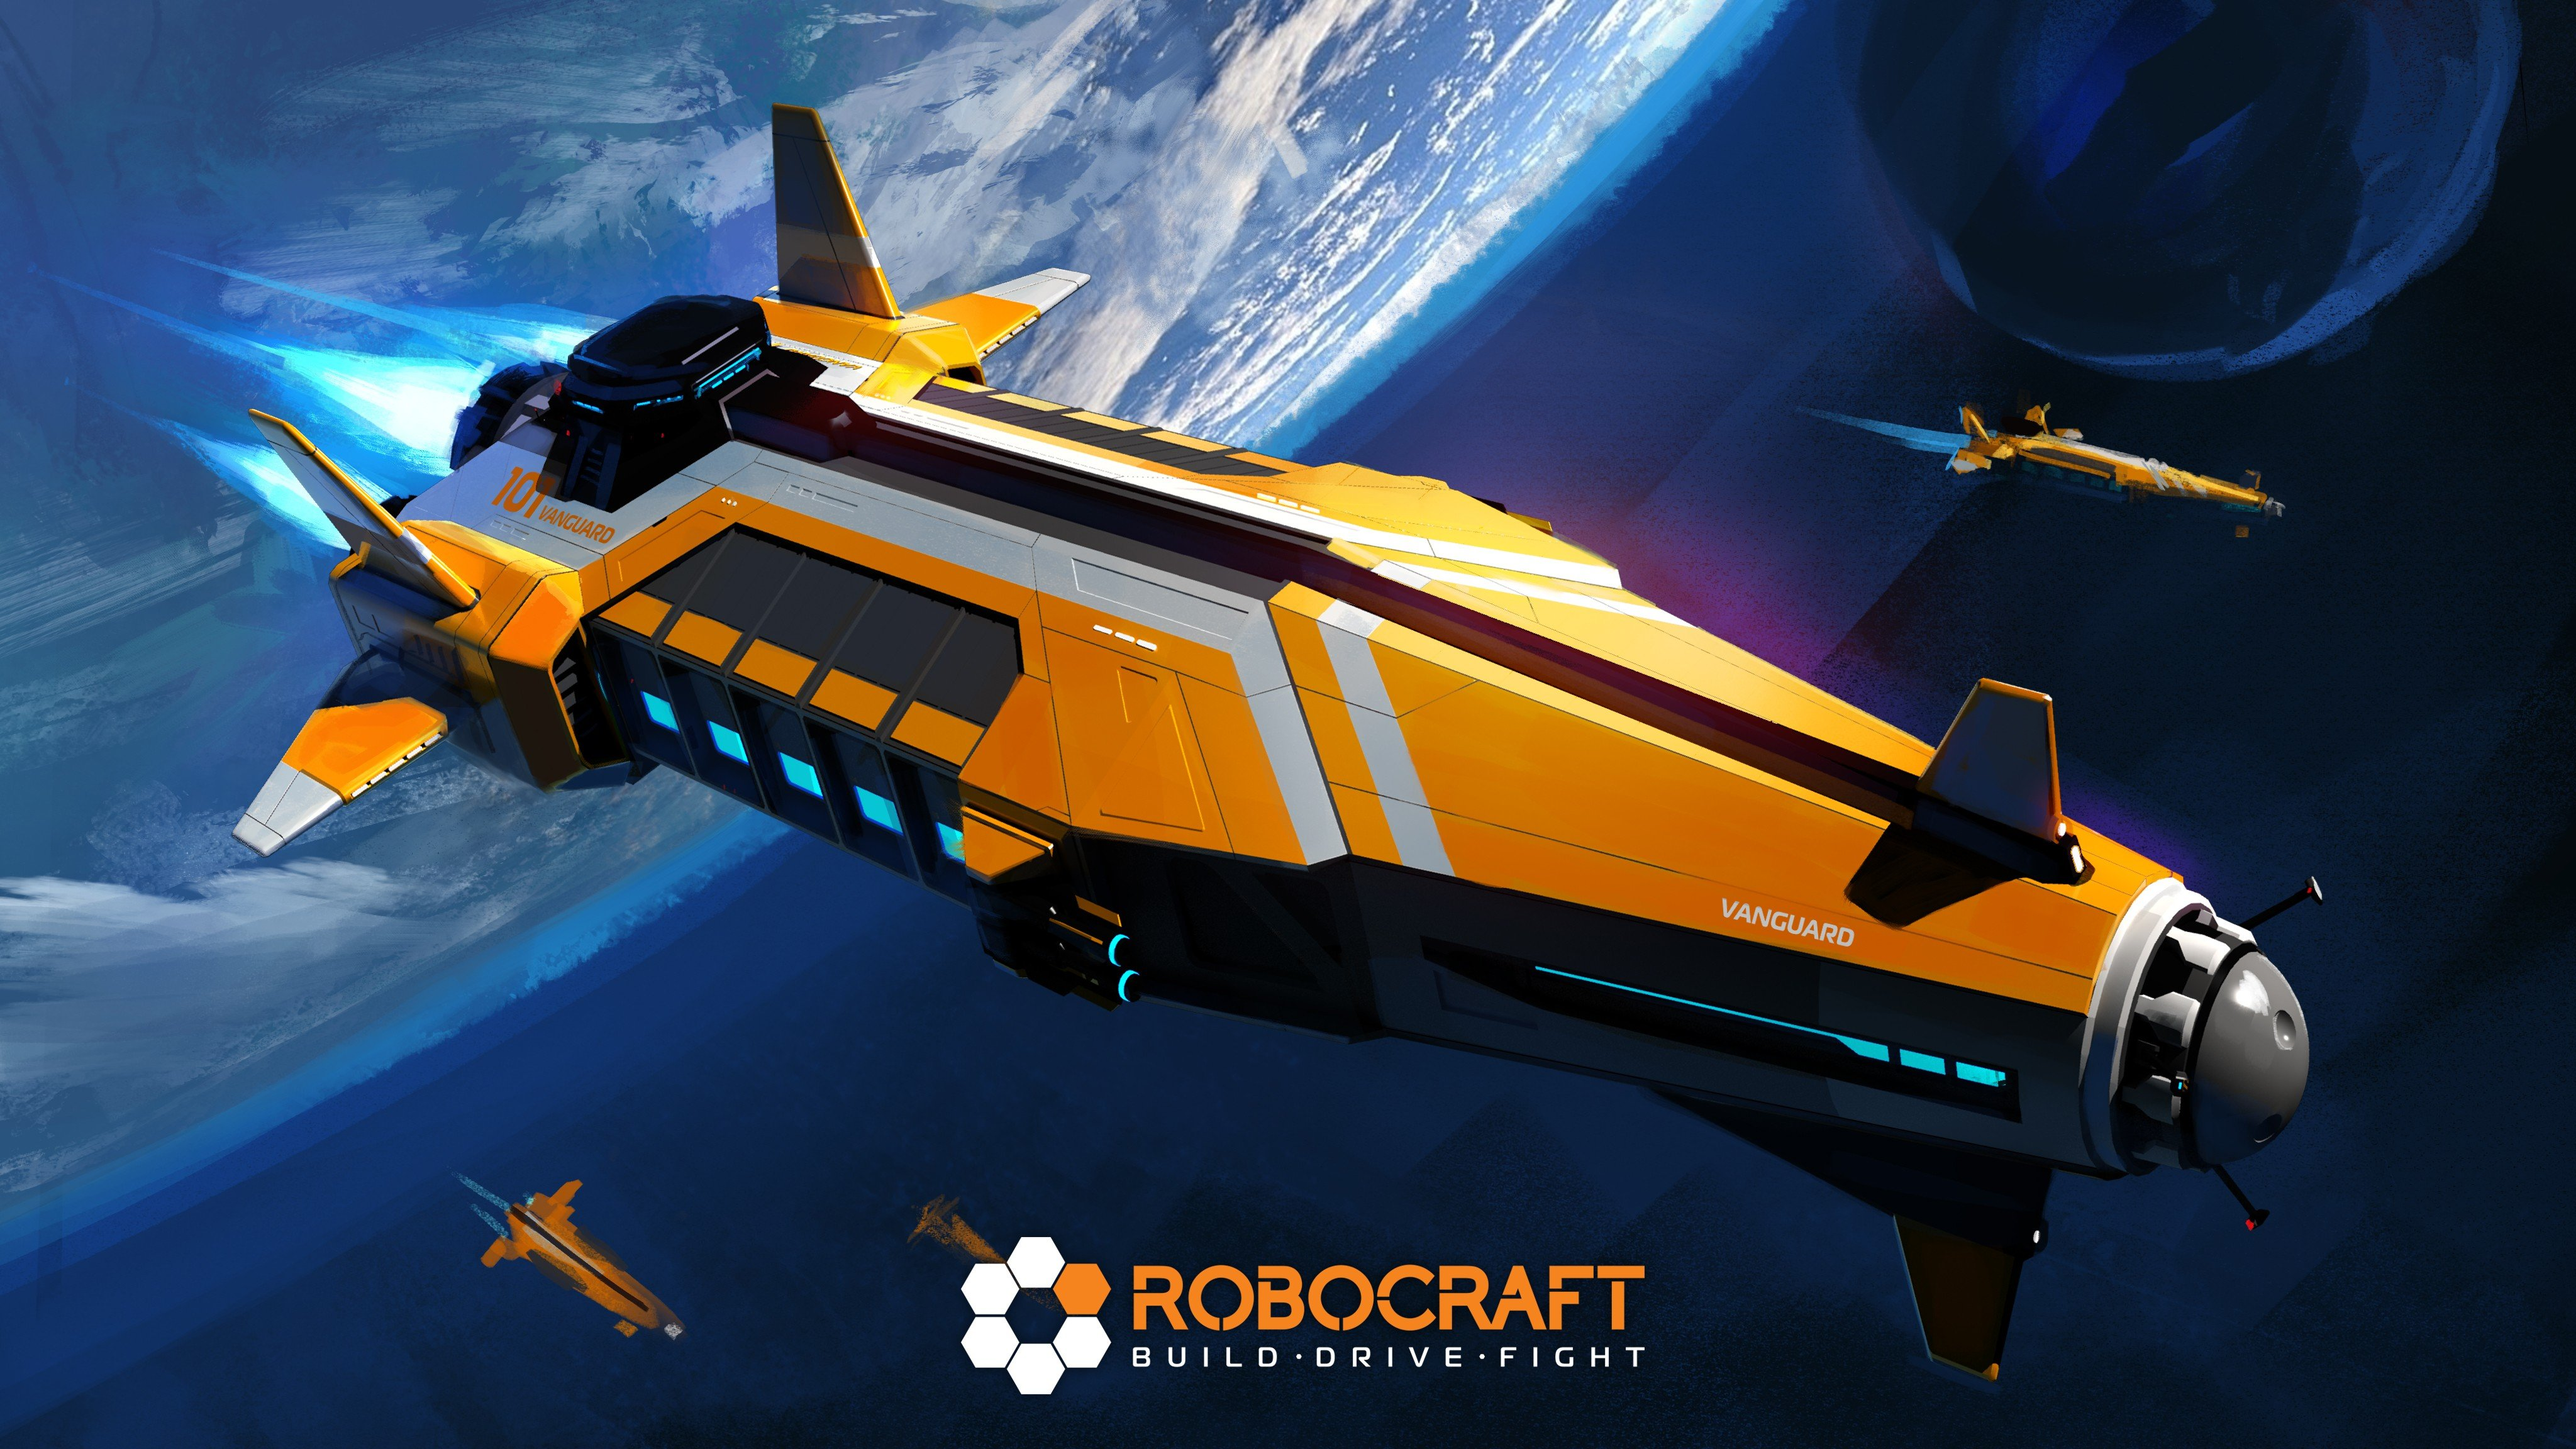 robocraft Robot Video games HD Wallpapers Desktop and Mobile 4096x2304